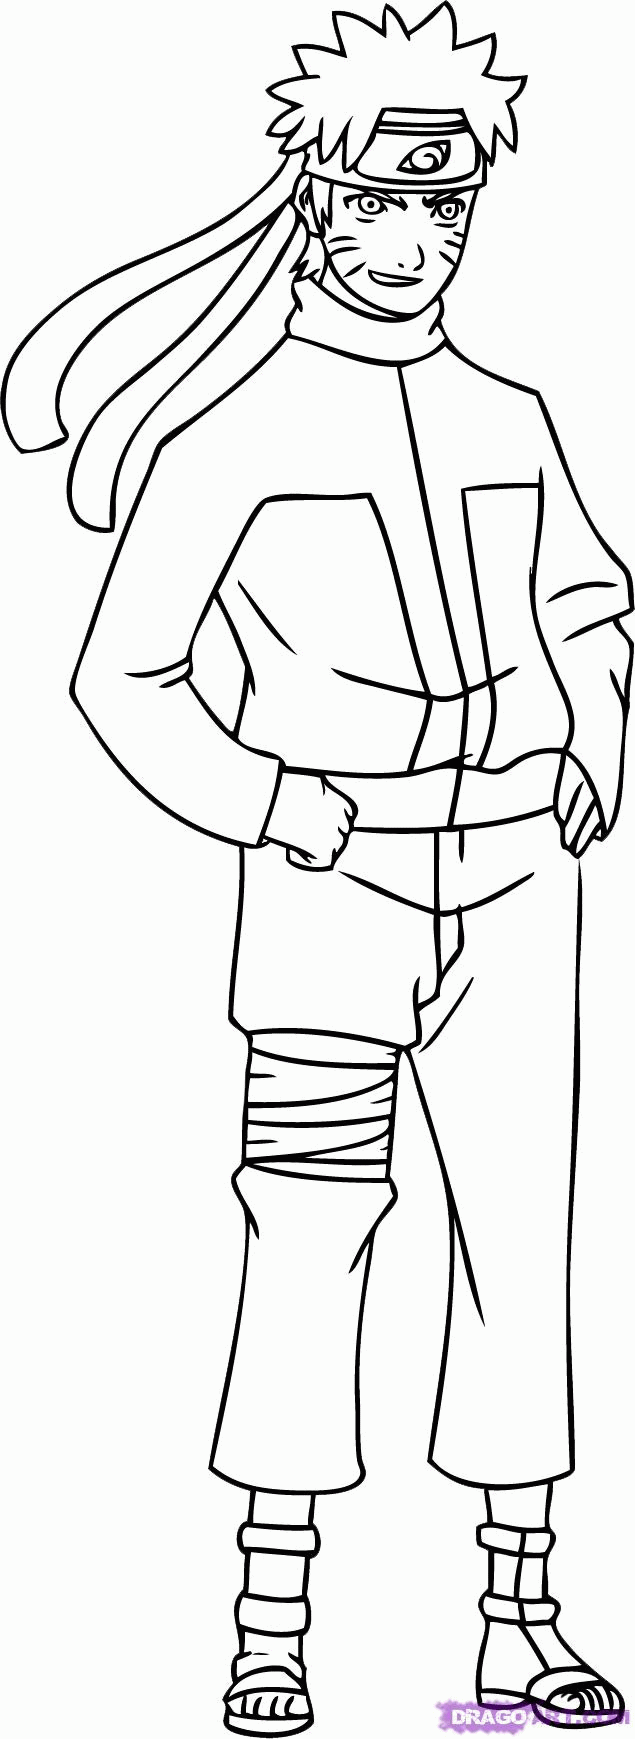 naruto shippuden coloring pages free printable naruto coloring pages for kids pages naruto coloring shippuden